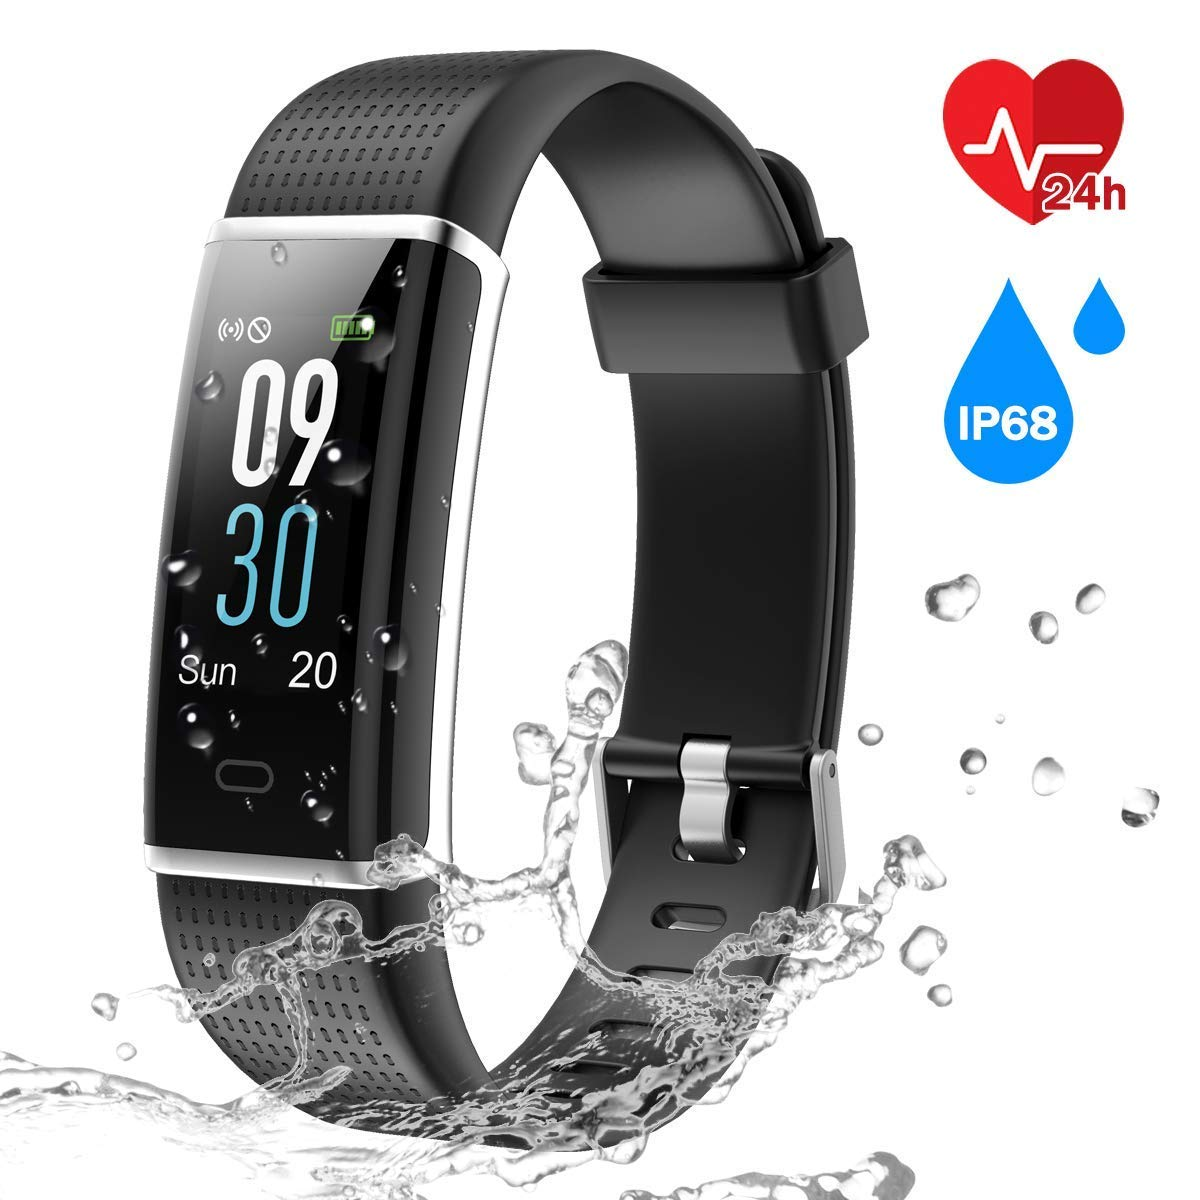 CHEREEKI Colour Screen Fitness Tracker Fitness Trackers With 24 Hours Heart Rate Monitor IP68 Waterproof Activity Tracker 14 Exercise Modes Smart Watch Screen Notification SMS